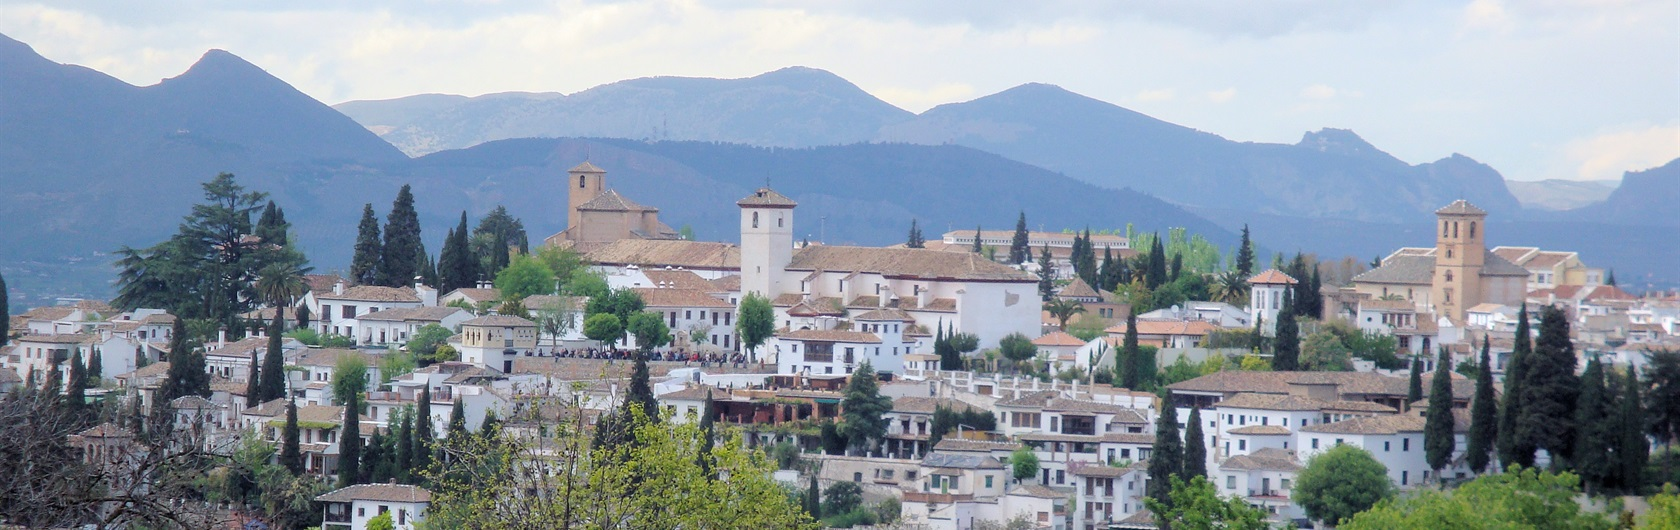 4.  Elsewhere... Andalusia:  Granada and the Sierra Nevada mountains